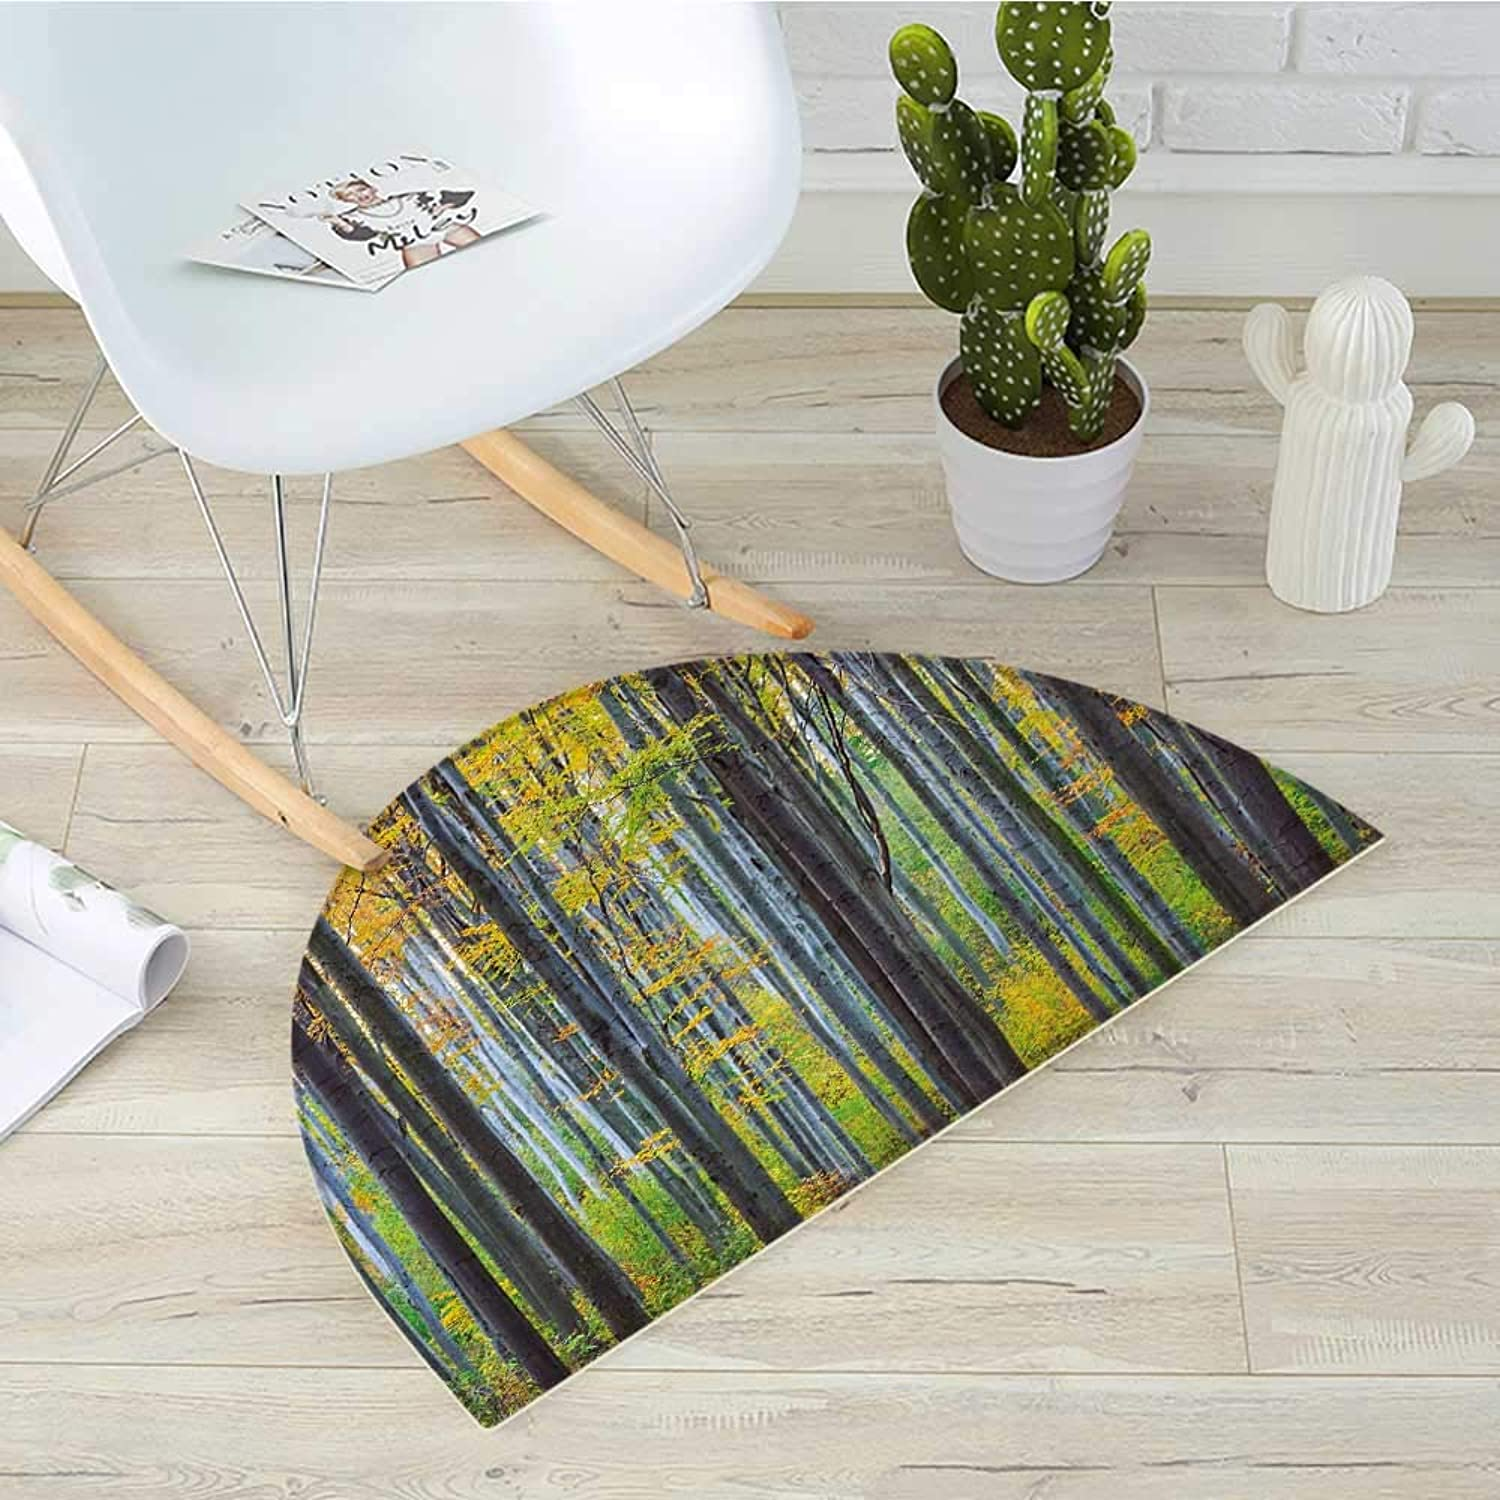 Fall Semicircular CushionLush Beech Fall Tree with Tall Bodies Wilderness Rural Countryside Themed Design Entry Door Mat H 19.7  xD 31.5  Grey Yellow